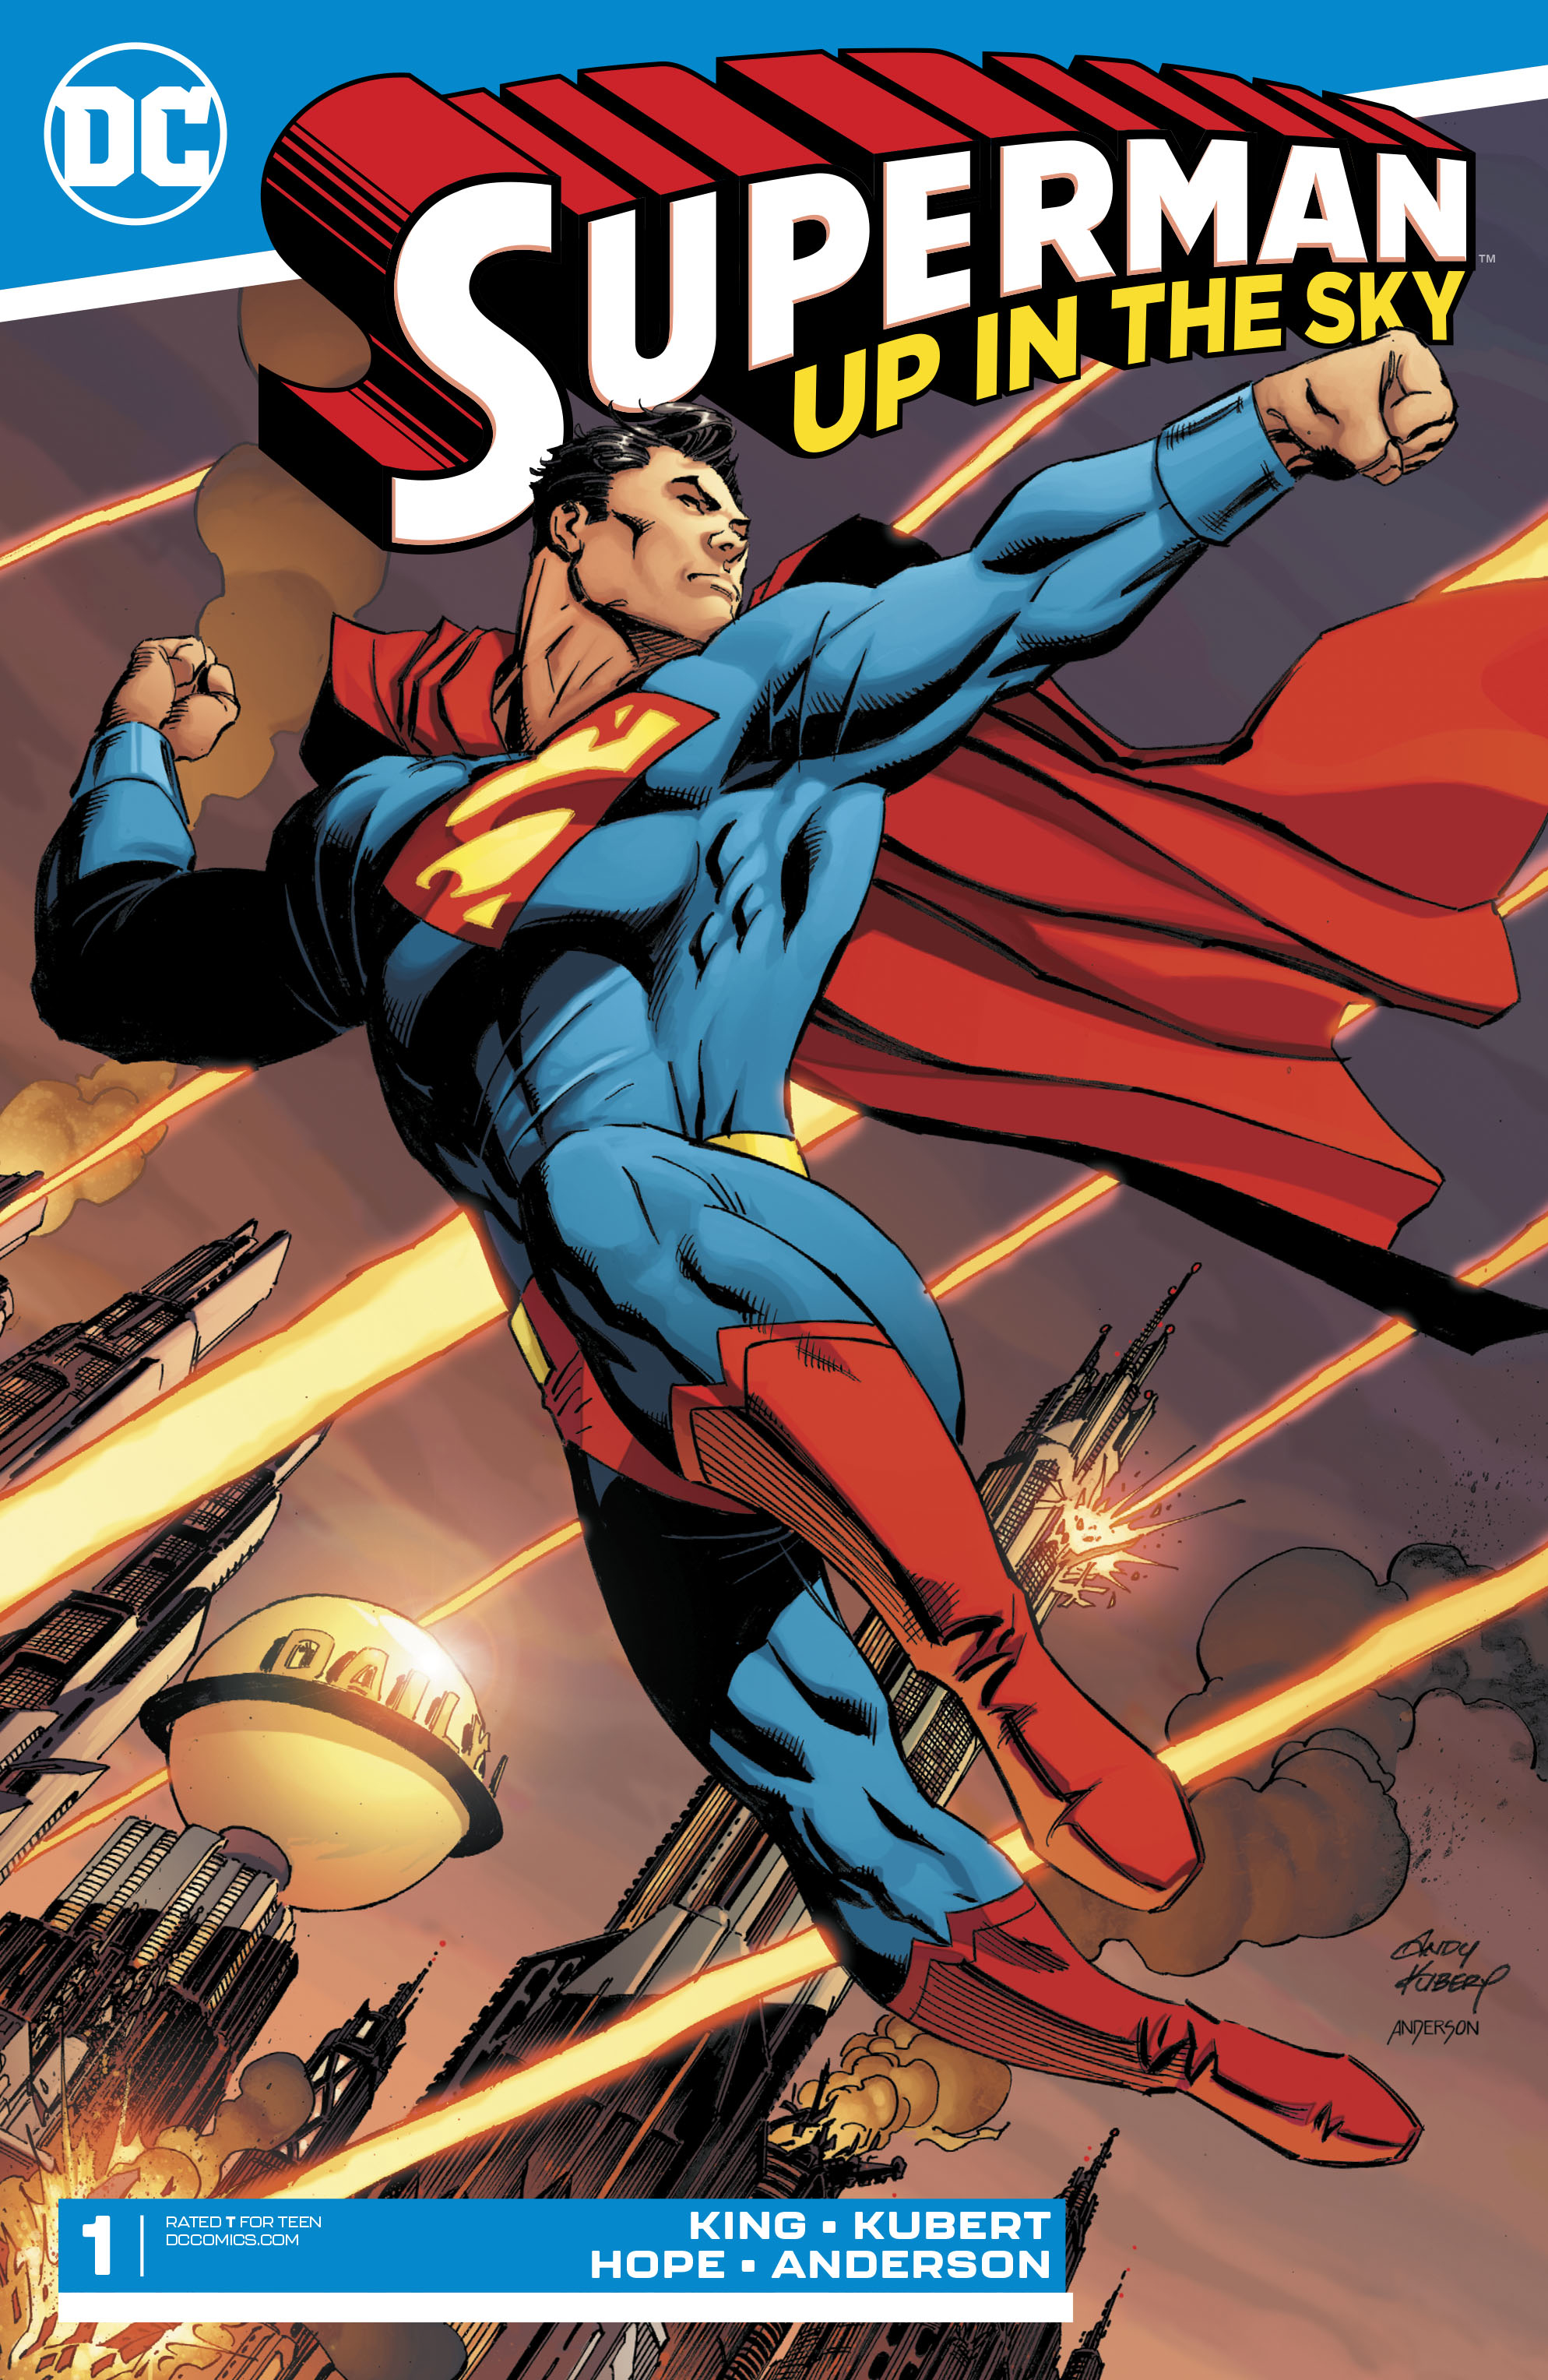 SUPERMAN UP IN THE SKY #1 (OF 6)